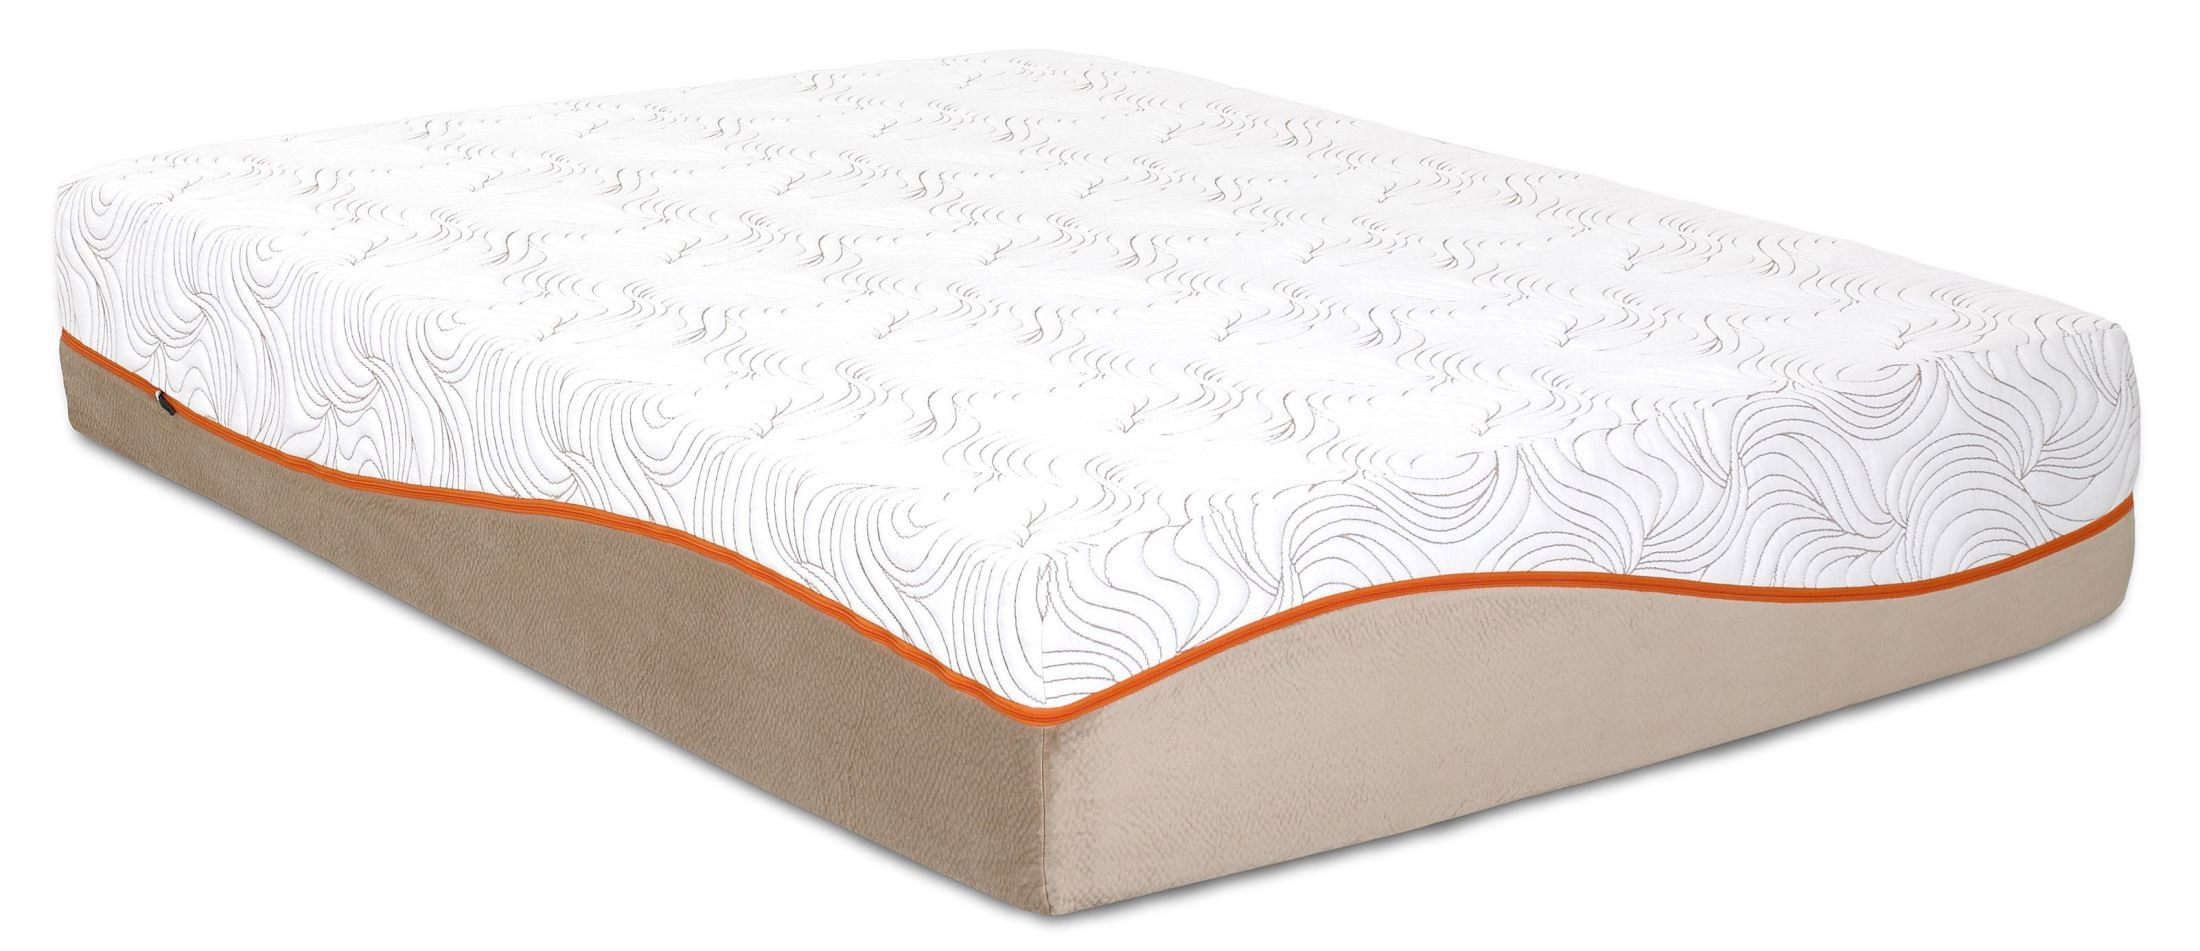 Picasso Twin Extra Long Mattress From Klaussner Coleman